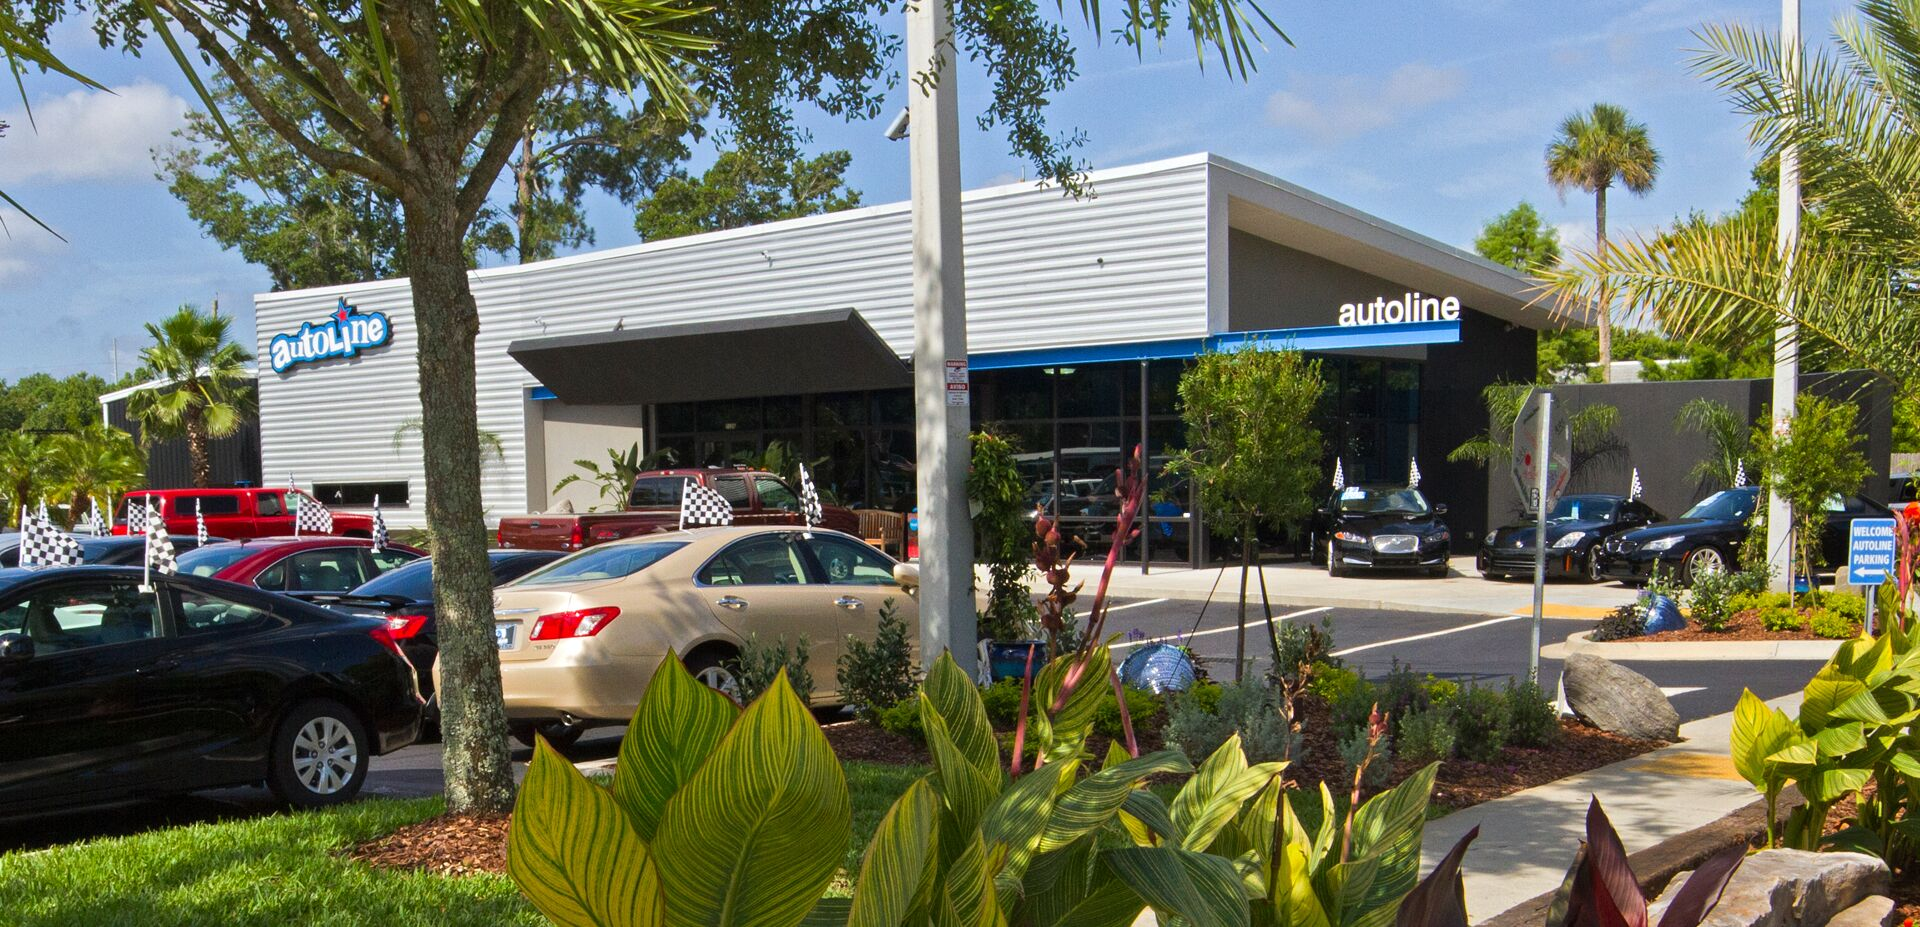 About Autoline Preowned